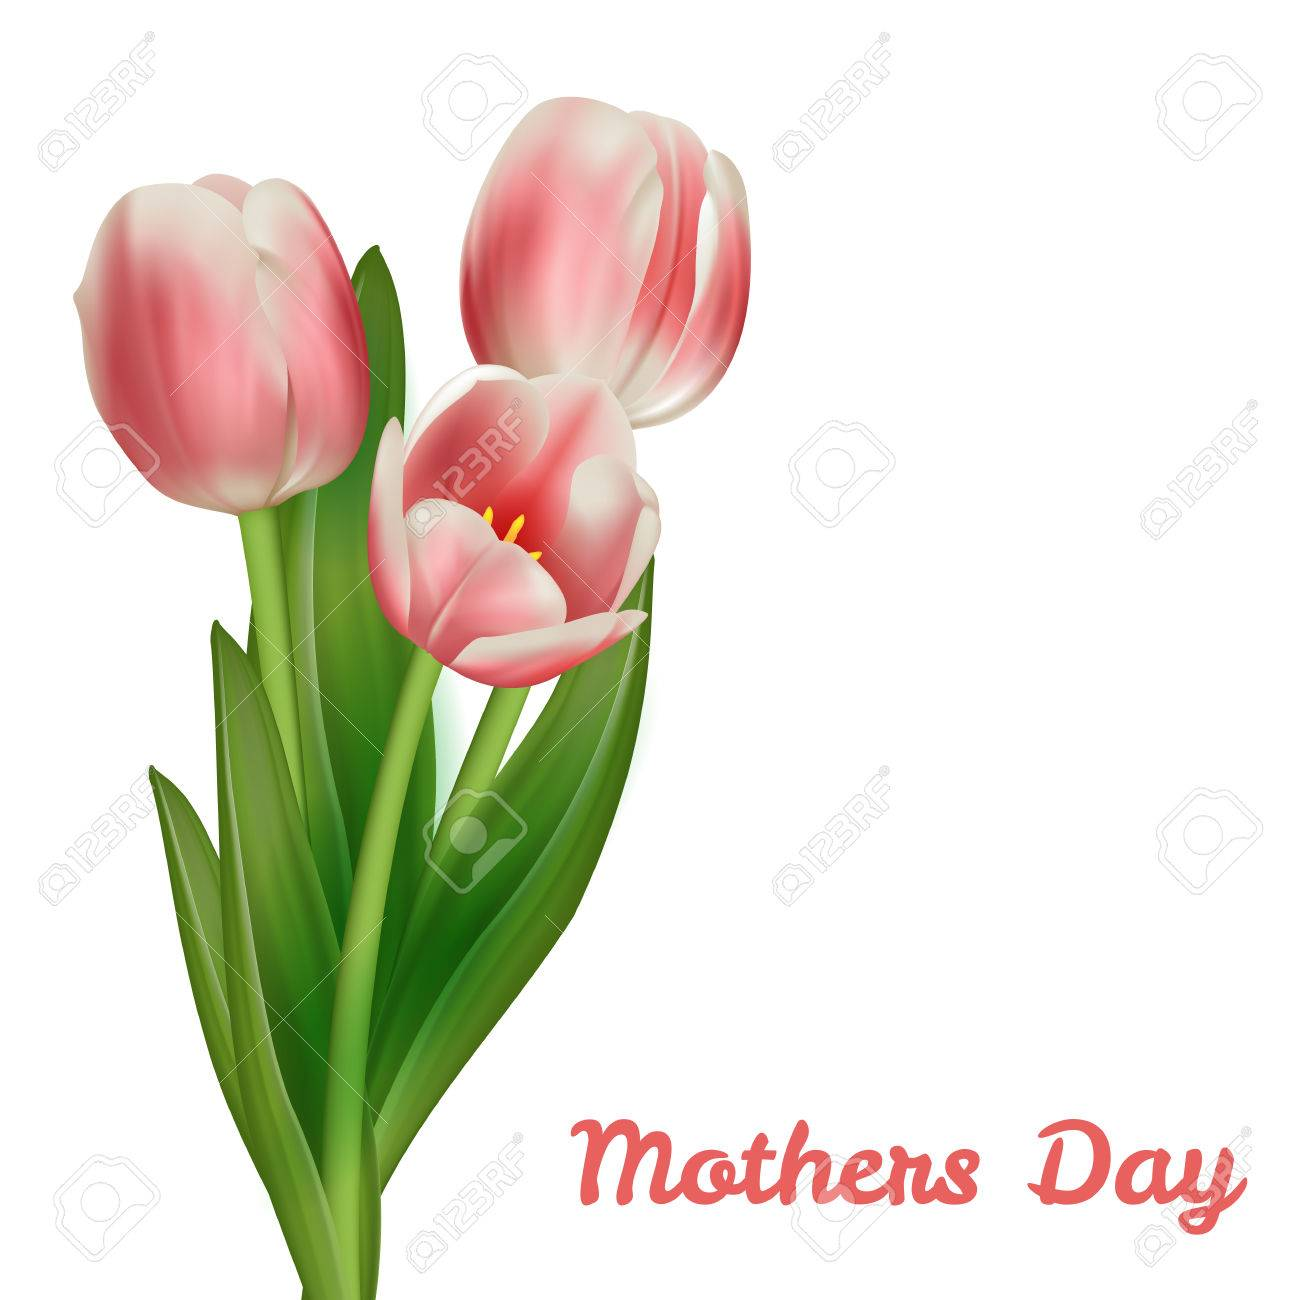 Mothers Day Tulip Bouquet >> Realistic Tulips Bouquet Mother S Day Card Design Template Royalty